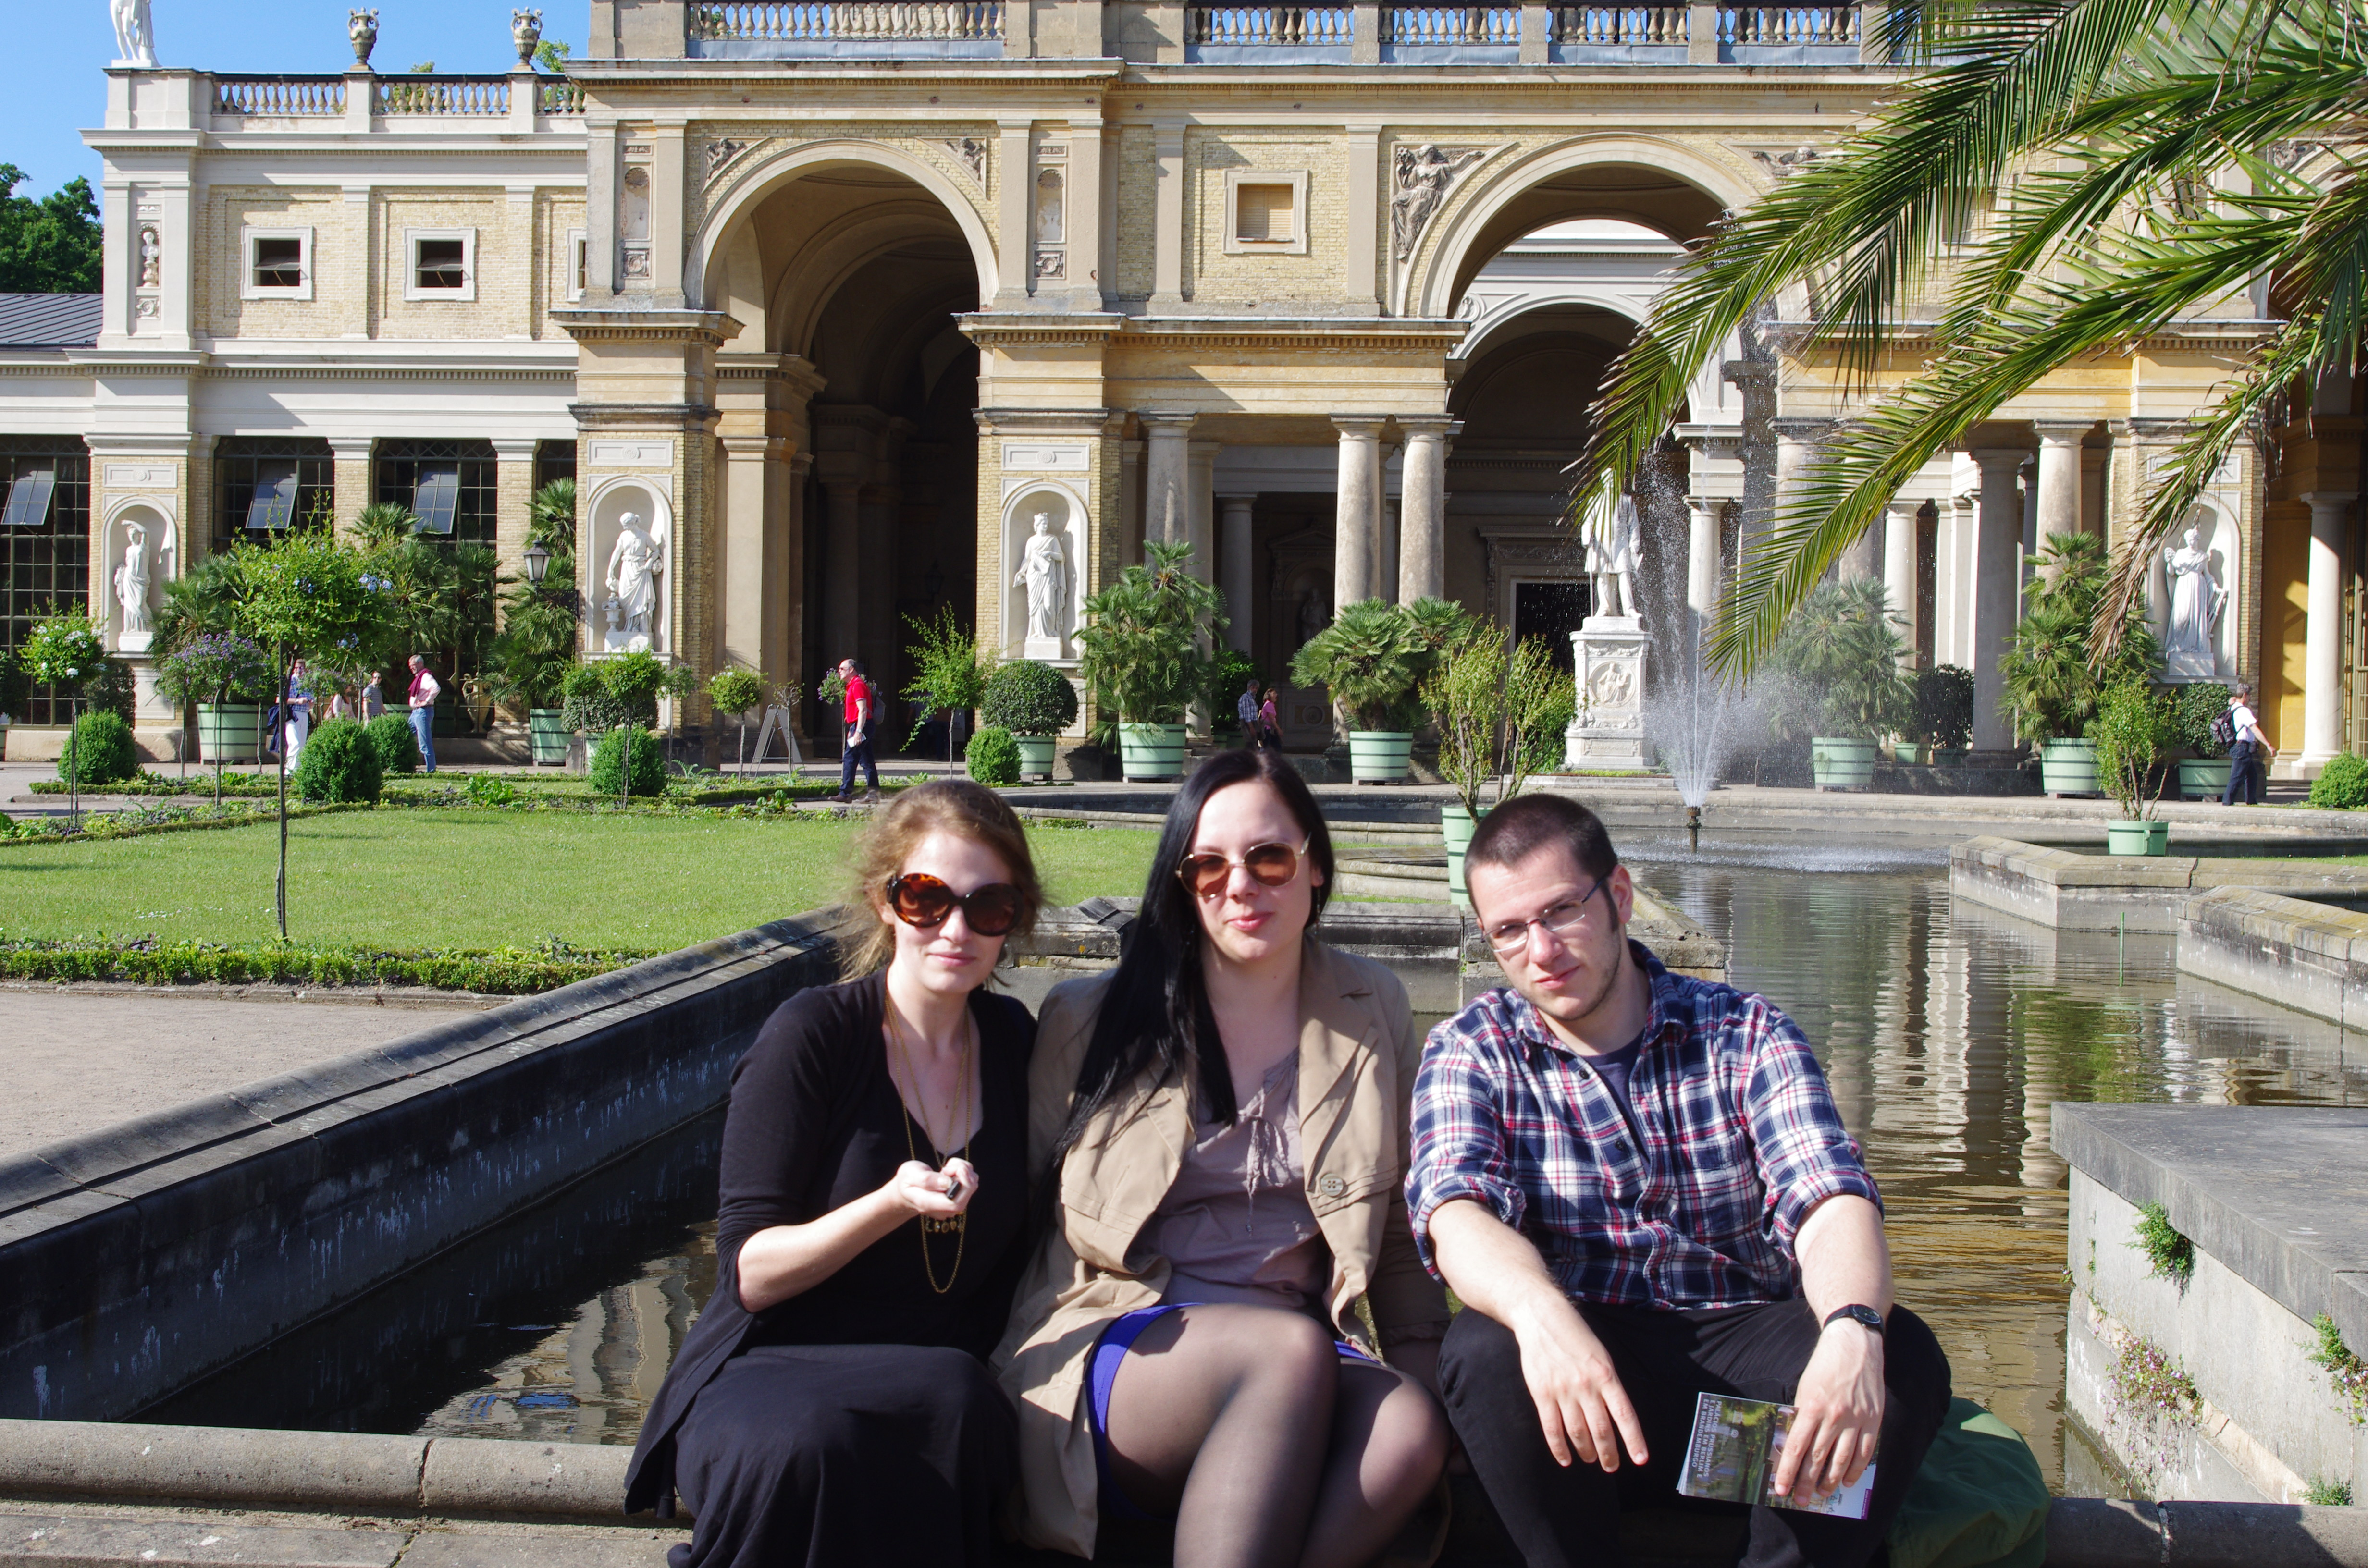 Sansoucci is a little overwhelming, and we only had time to wander around a bit and stop in the Orangerie...but that's an excuse to return, non?